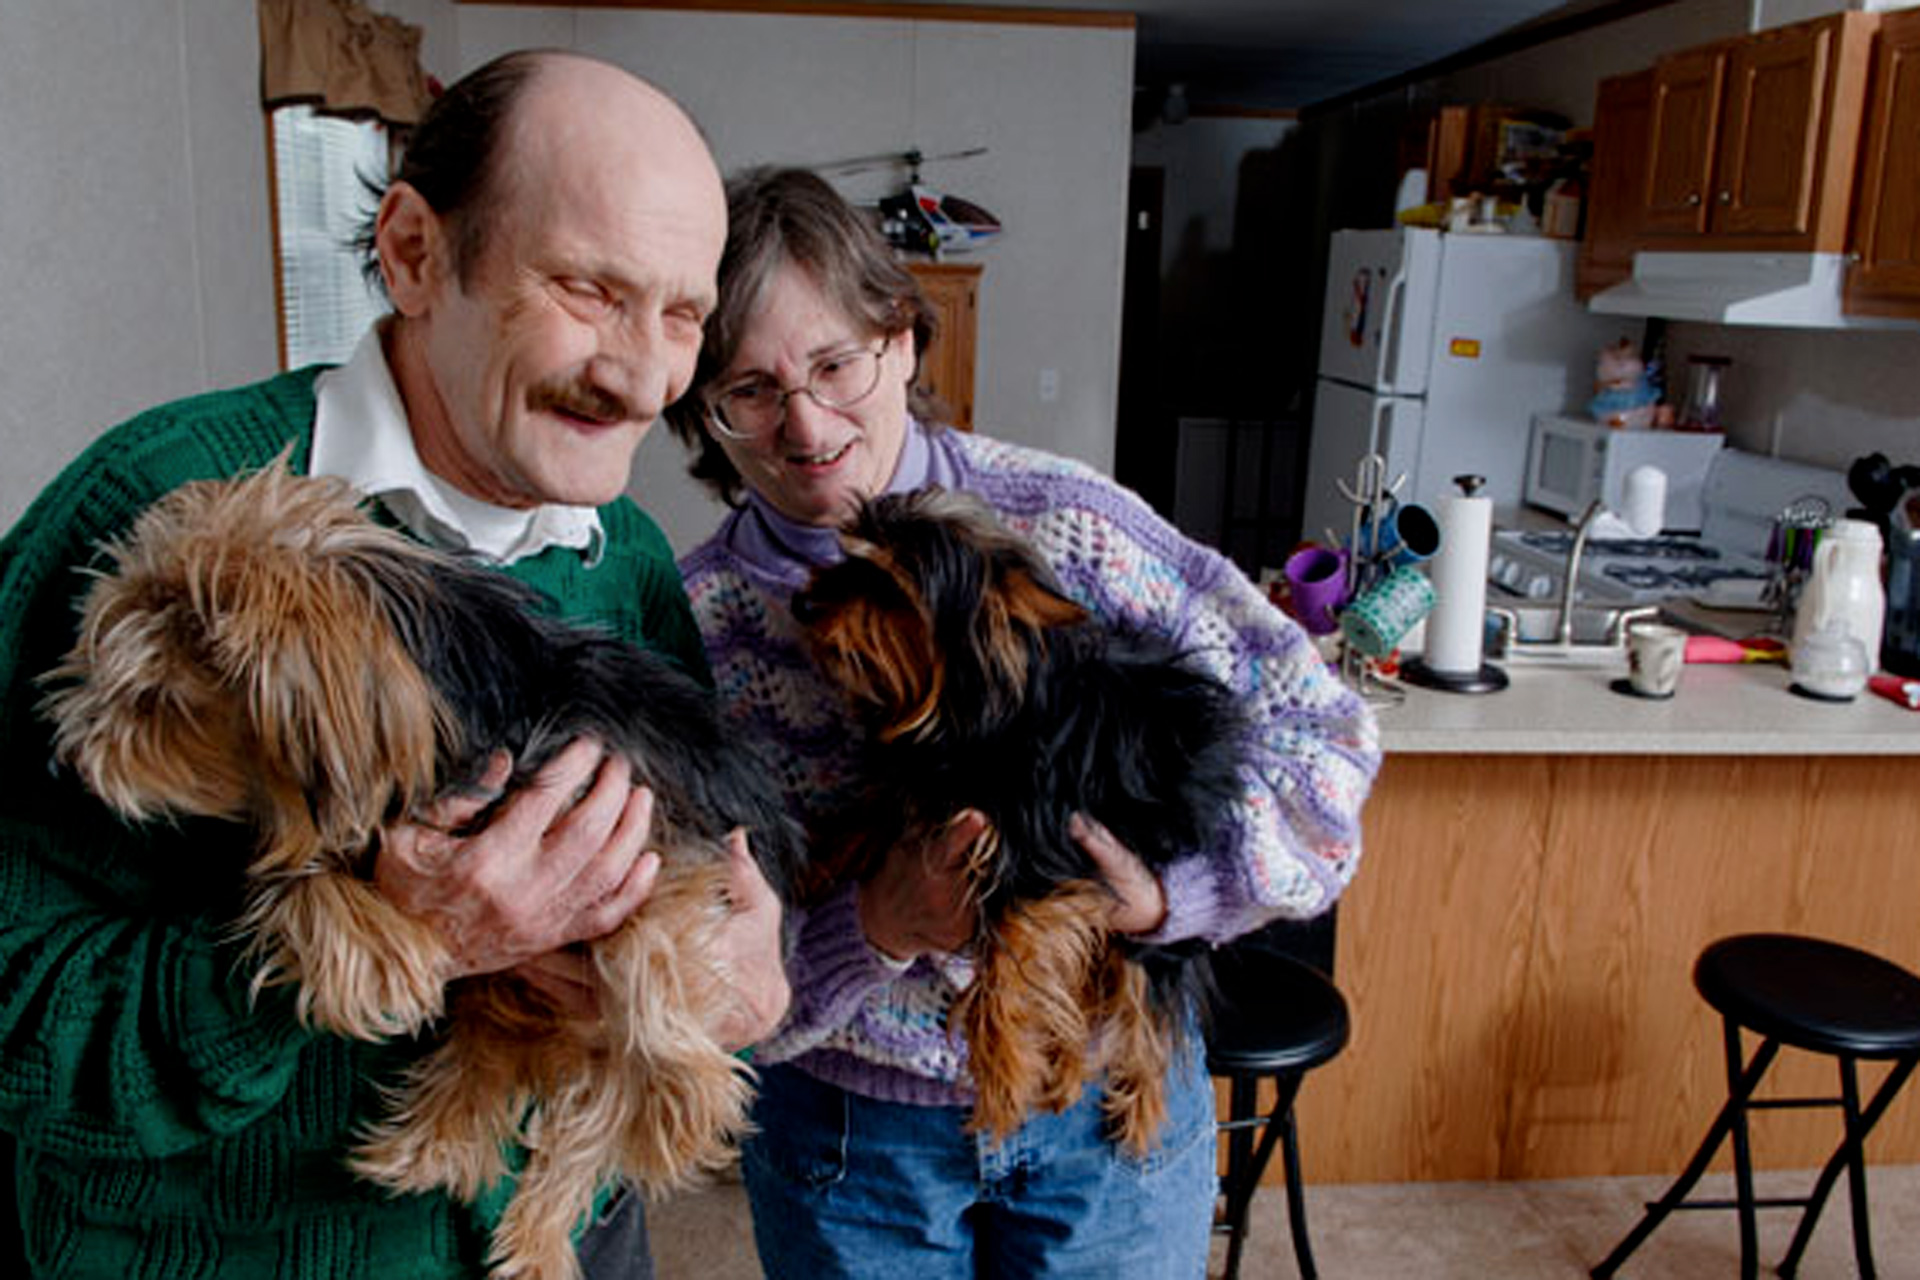 Man and woman holding squirmy dogs in their kitchen